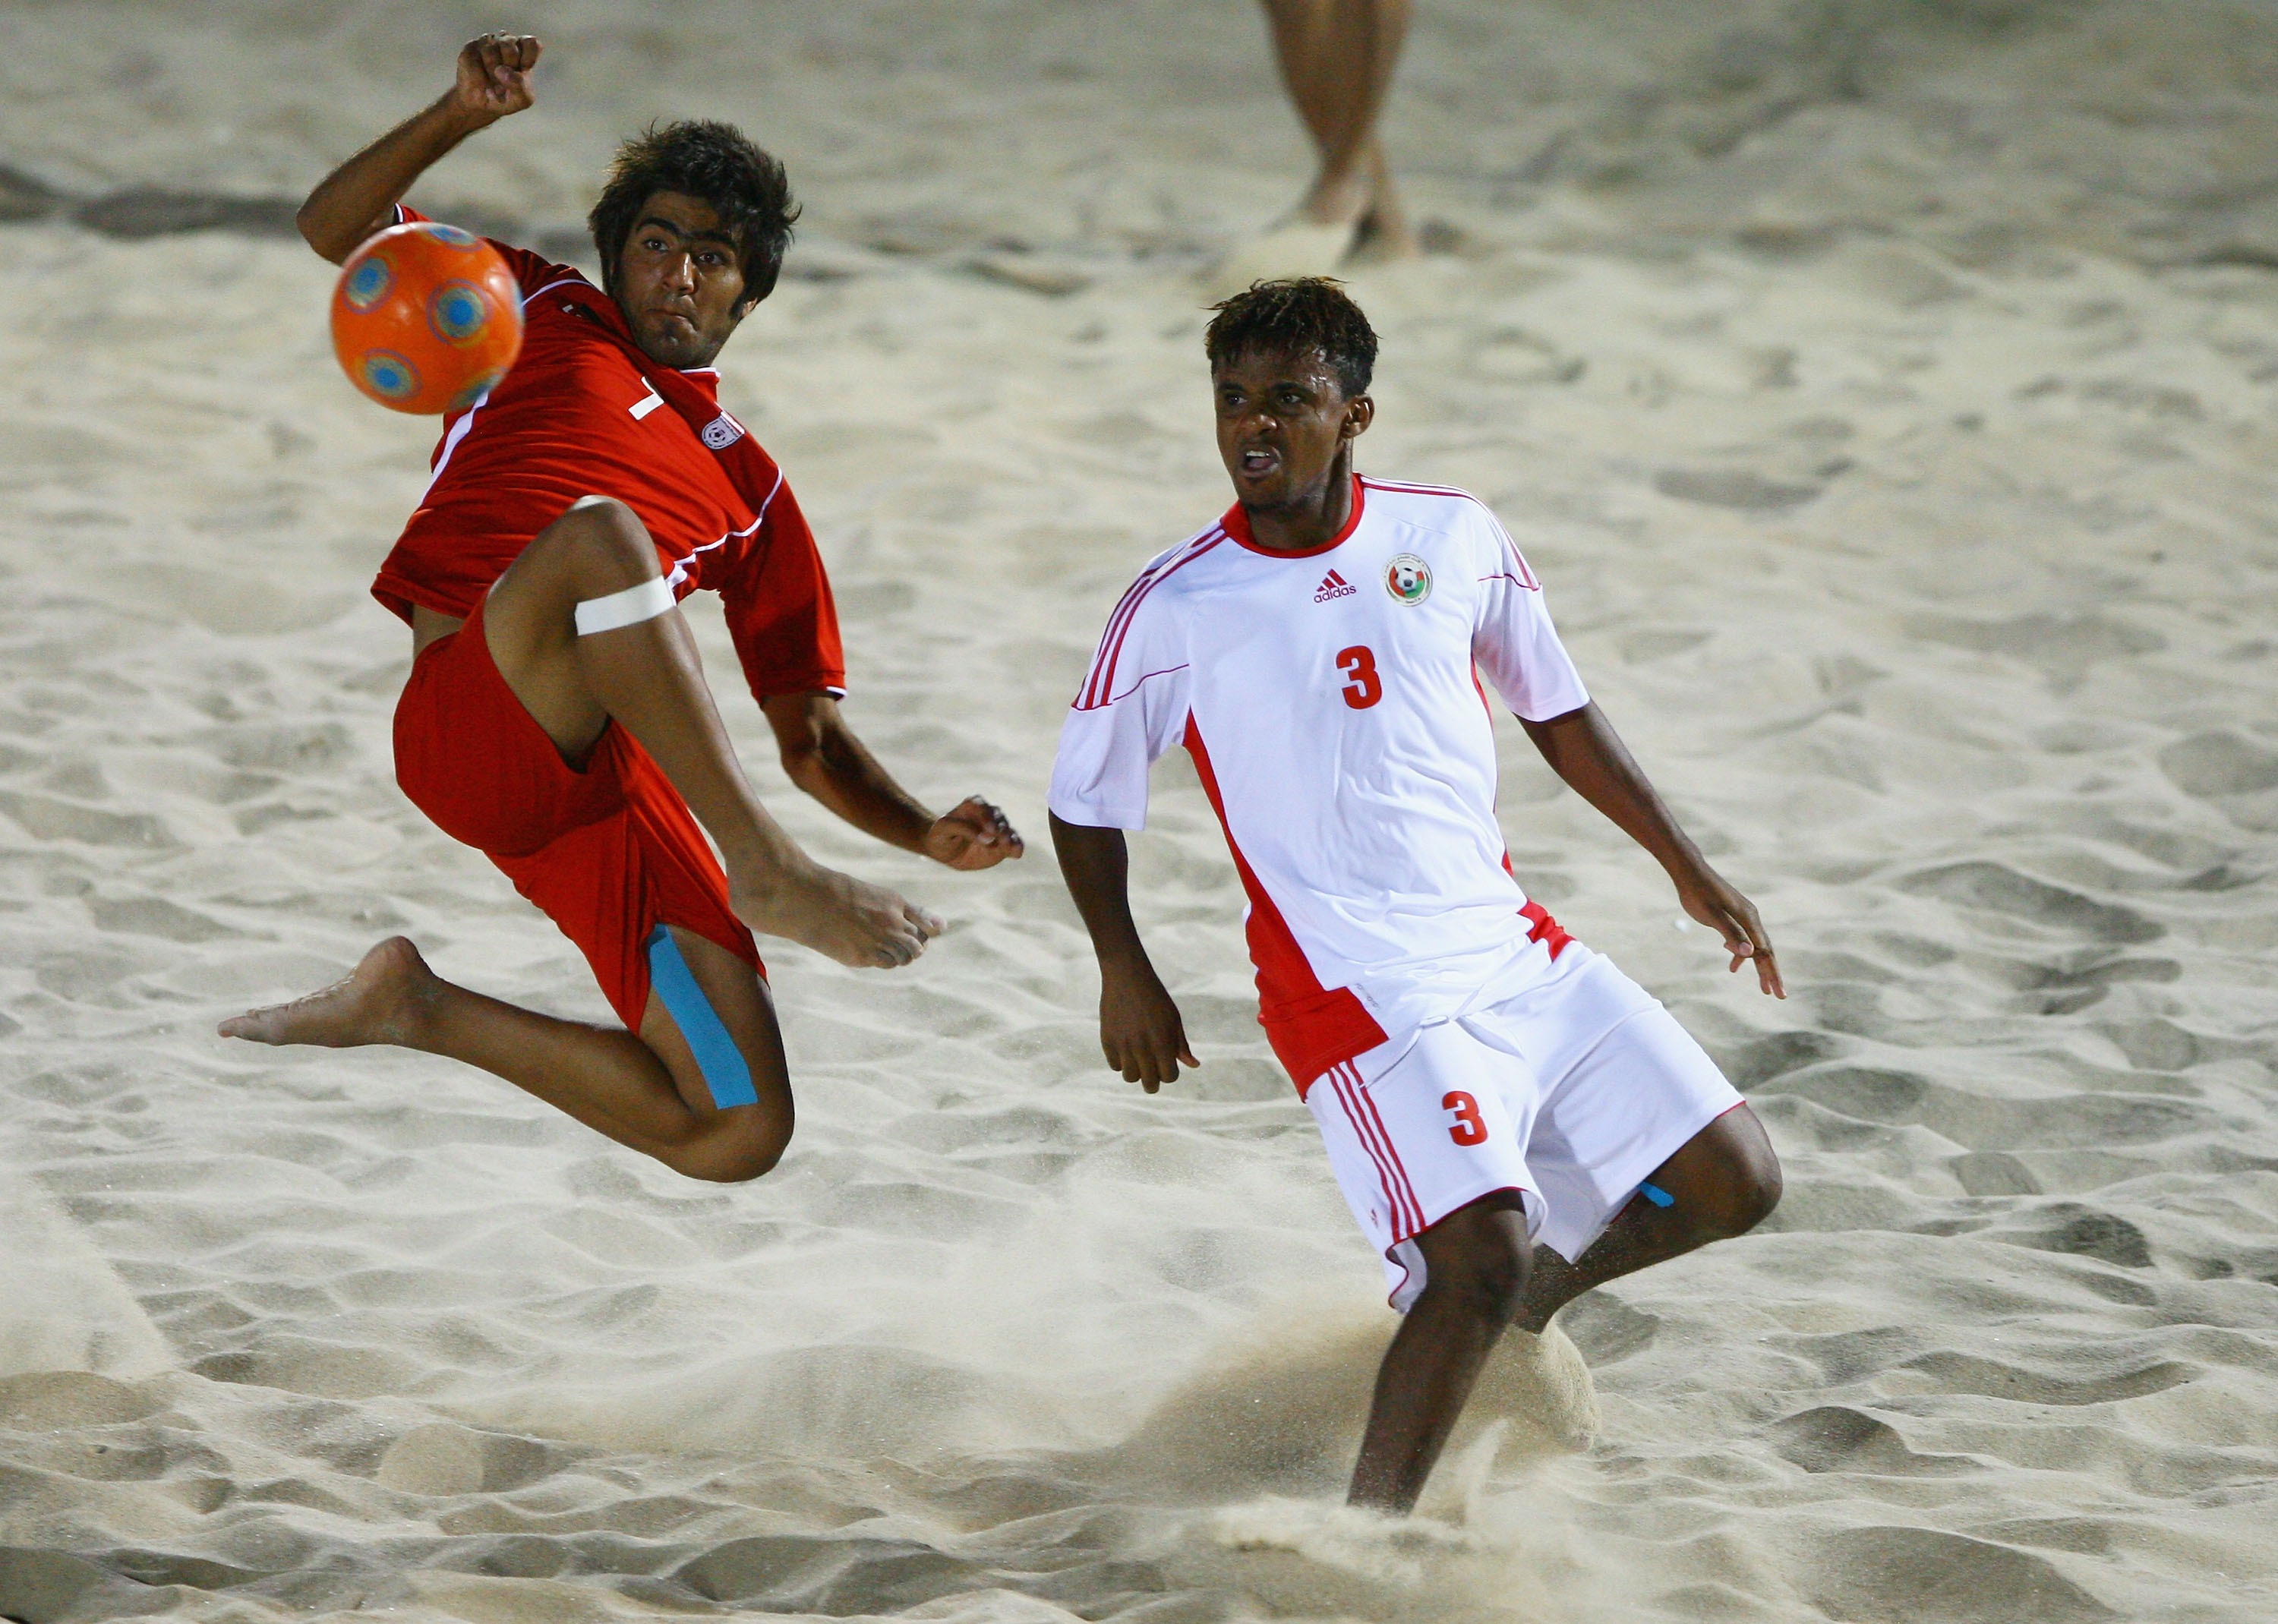 MUSCAT, OMAN - DECEMBER 15:   Mehran Morshedizadeh of Iran fights for the ball with Jalal Al Sinani of Oman in the Beach Soccer Semi Final between Oman and Iran at Al-Musannah Sports City during day eight of the 2nd Asian Beach Games Muscat 2010 on Decemb